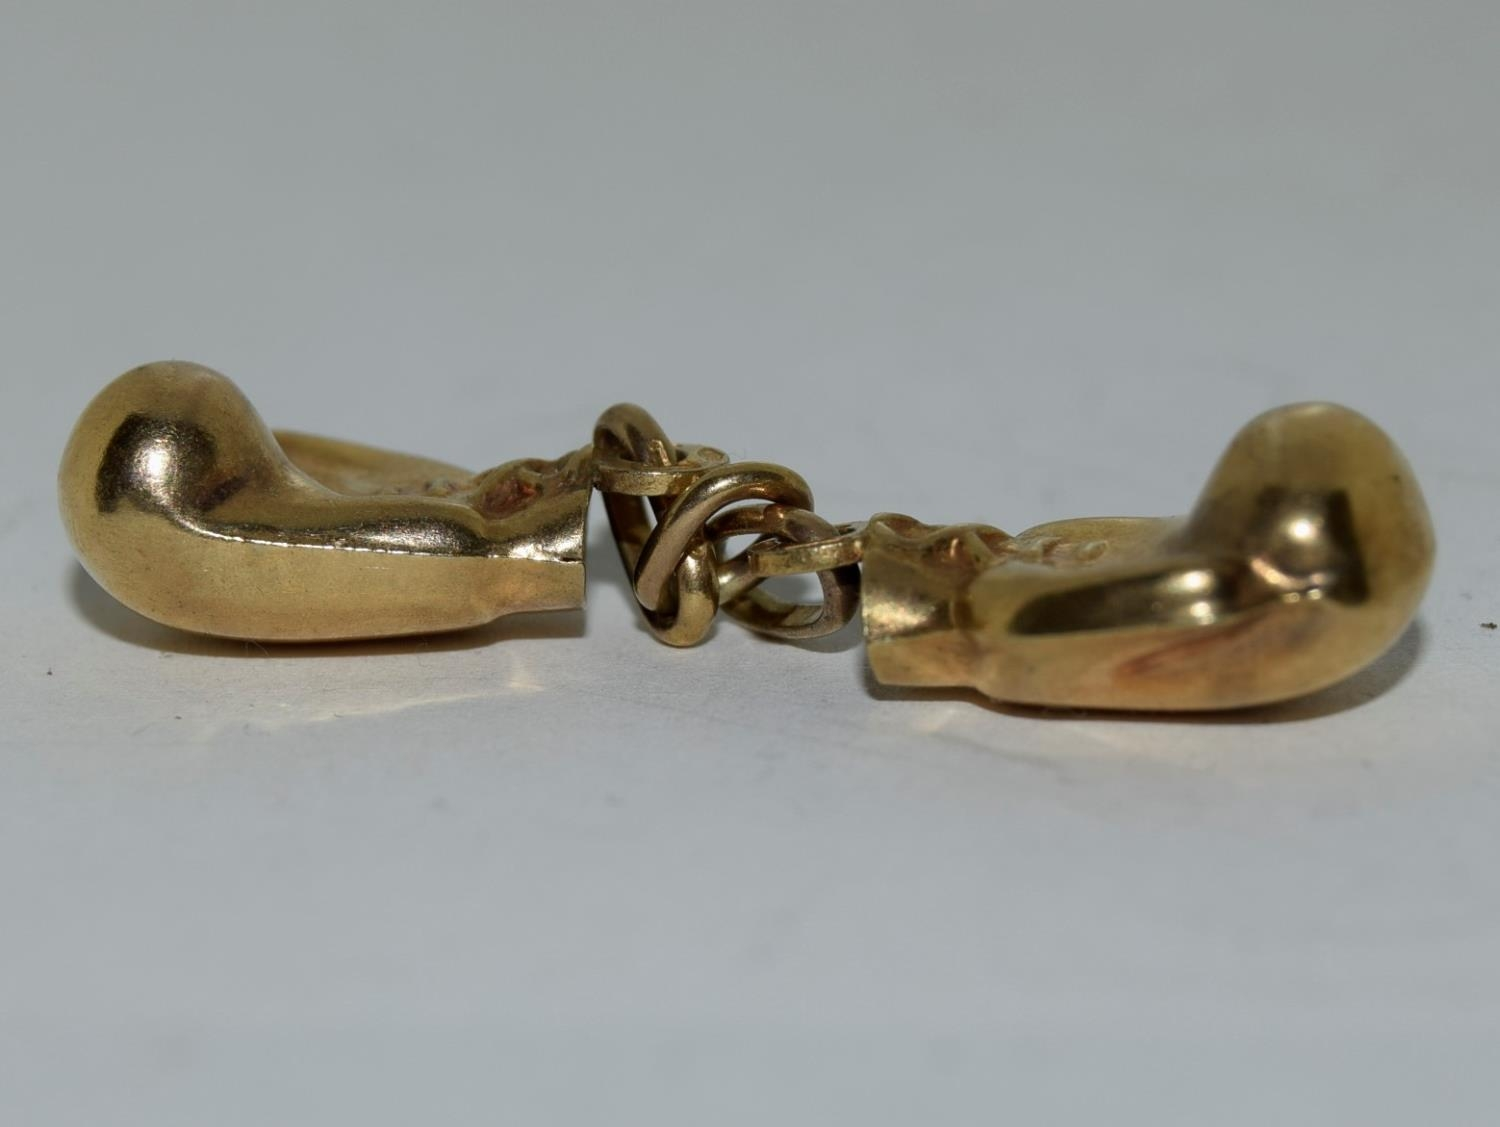 9ct gold charm a pair of boxing gloves - Image 5 of 6